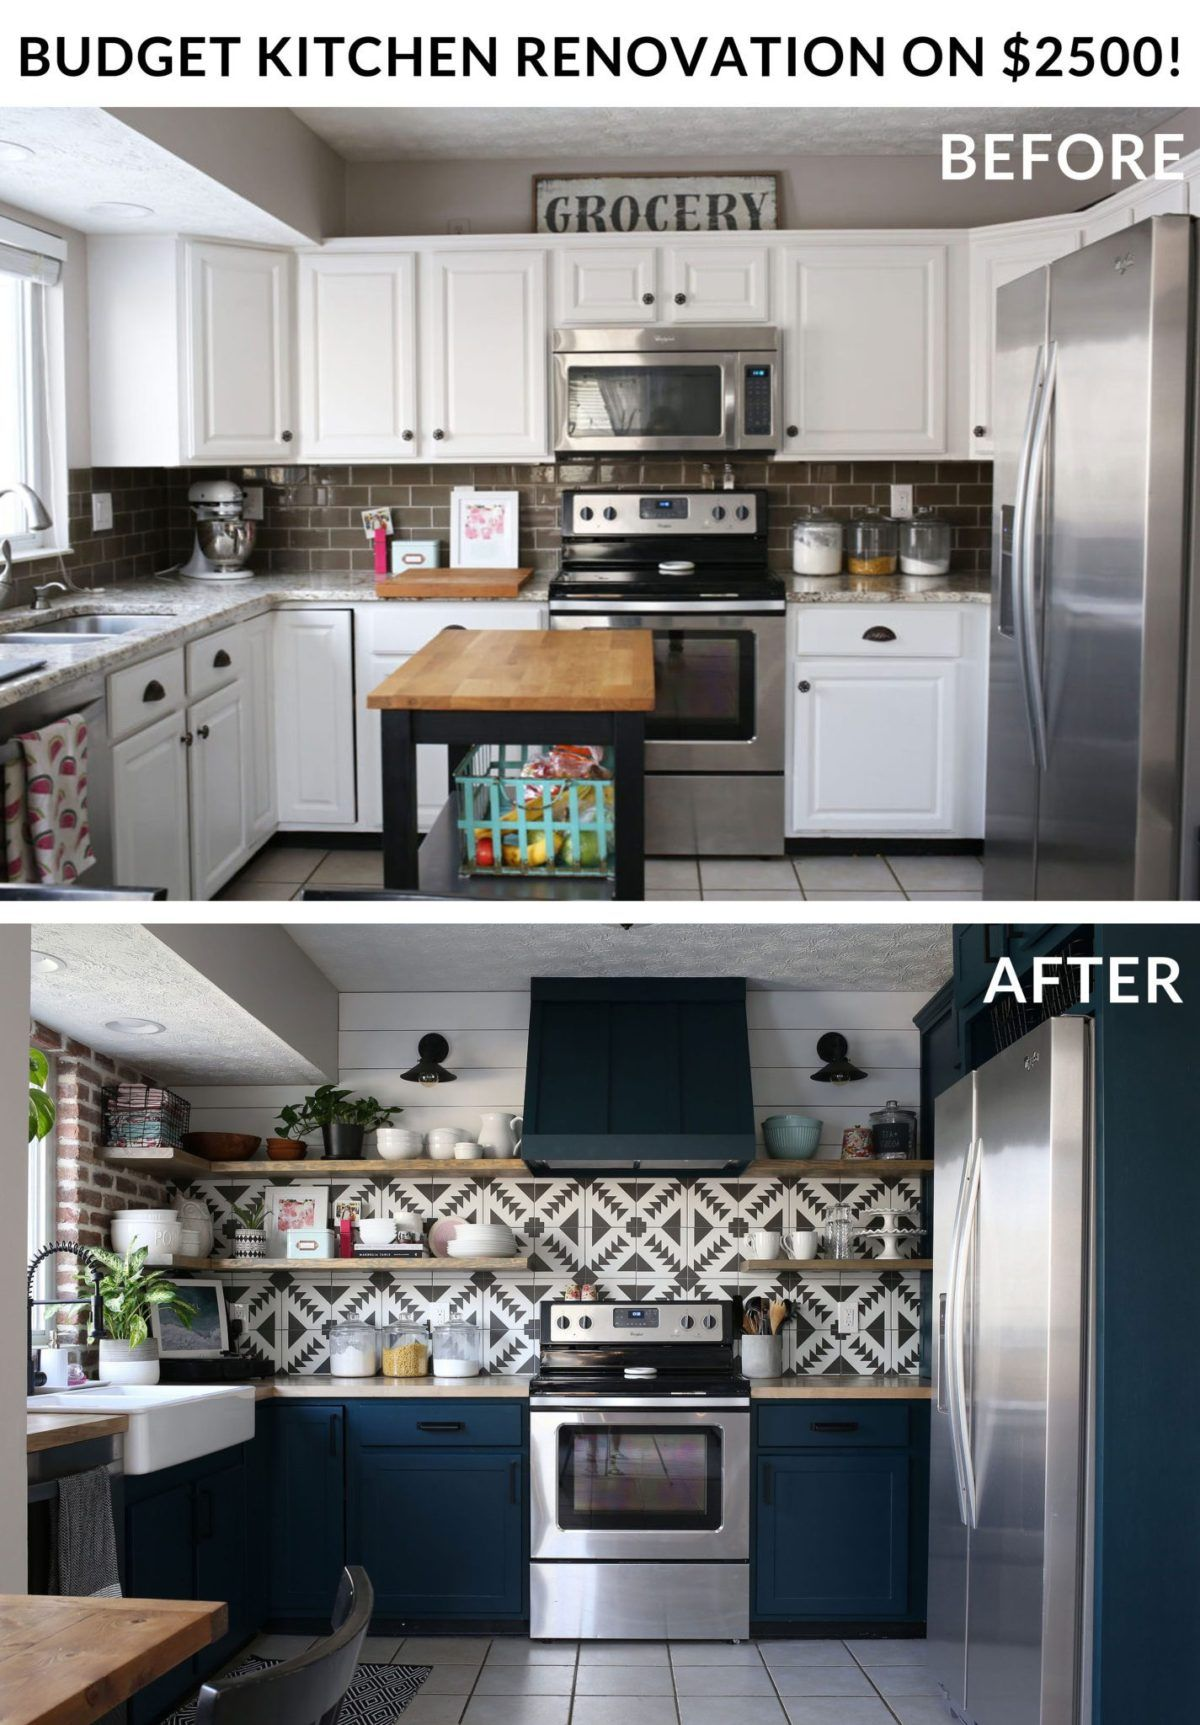 Remodeling Our Kitchen On A 2500 Budget Hazelwood Homes Budget Kitchen Remodel Kitchen Remodel Kitchen On A Budget